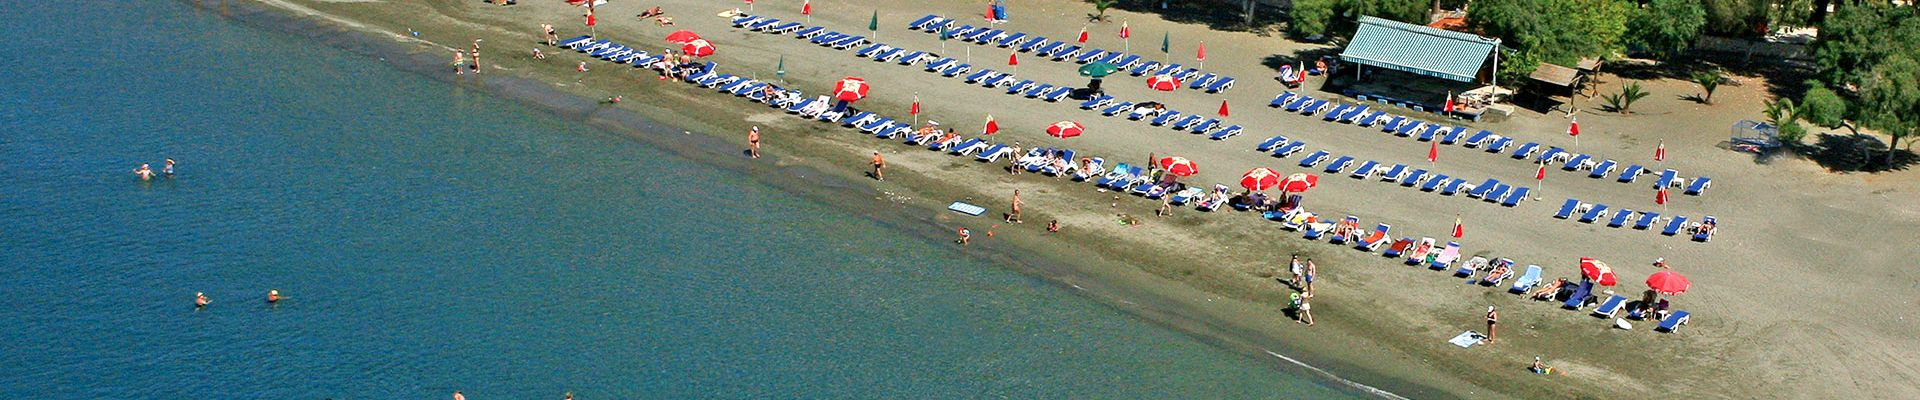 LIMASSOL BEACHES